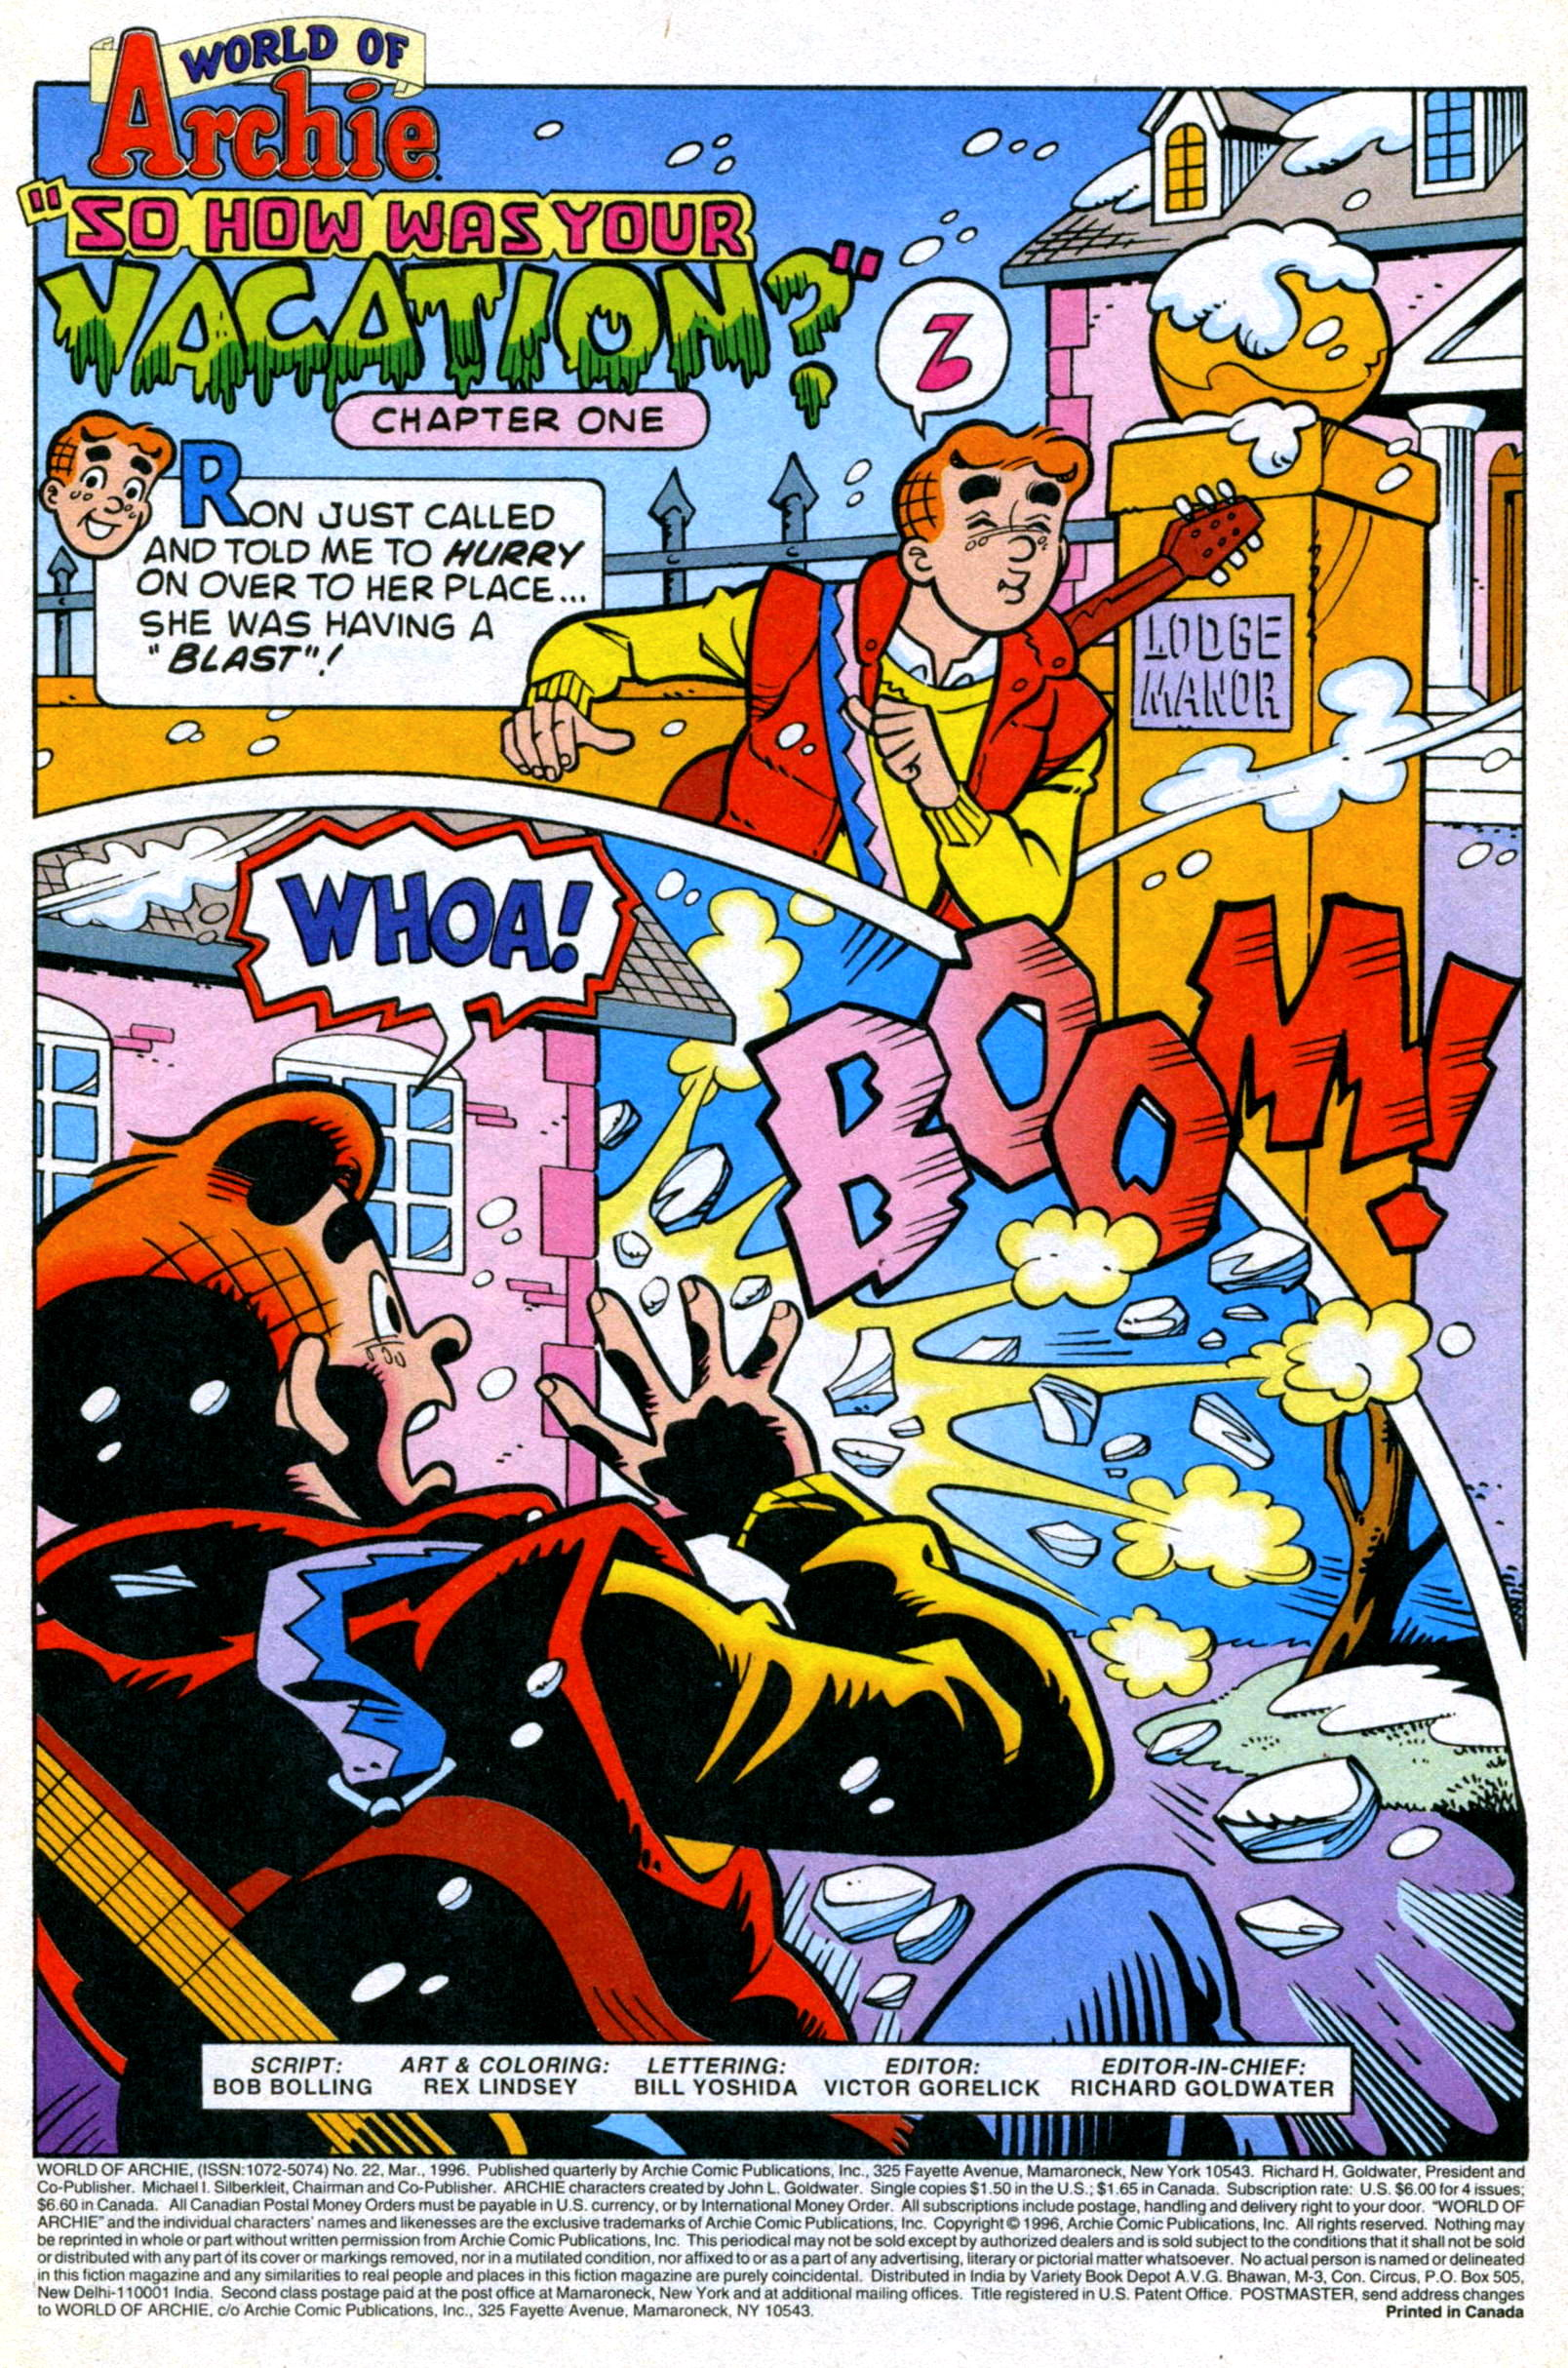 Read online World of Archie comic -  Issue #22 - 3